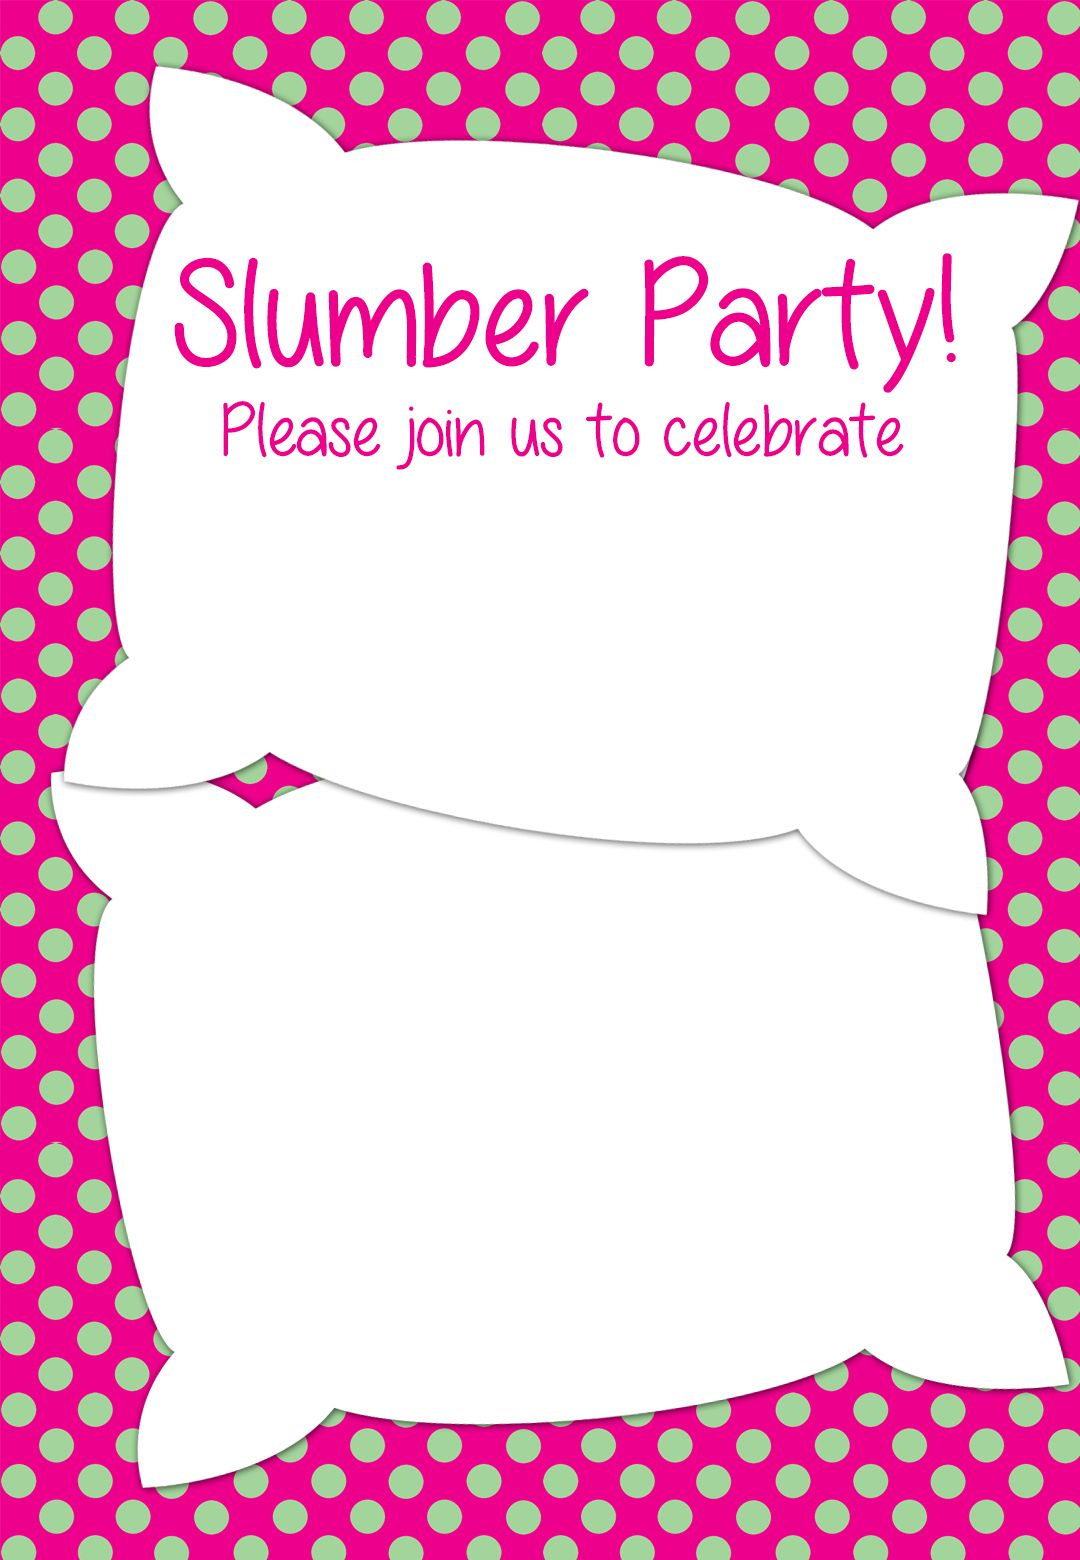 Free Printable Slumber Party Invitation Party Ideas In 2019 with regard to sizing 1080 X 1560